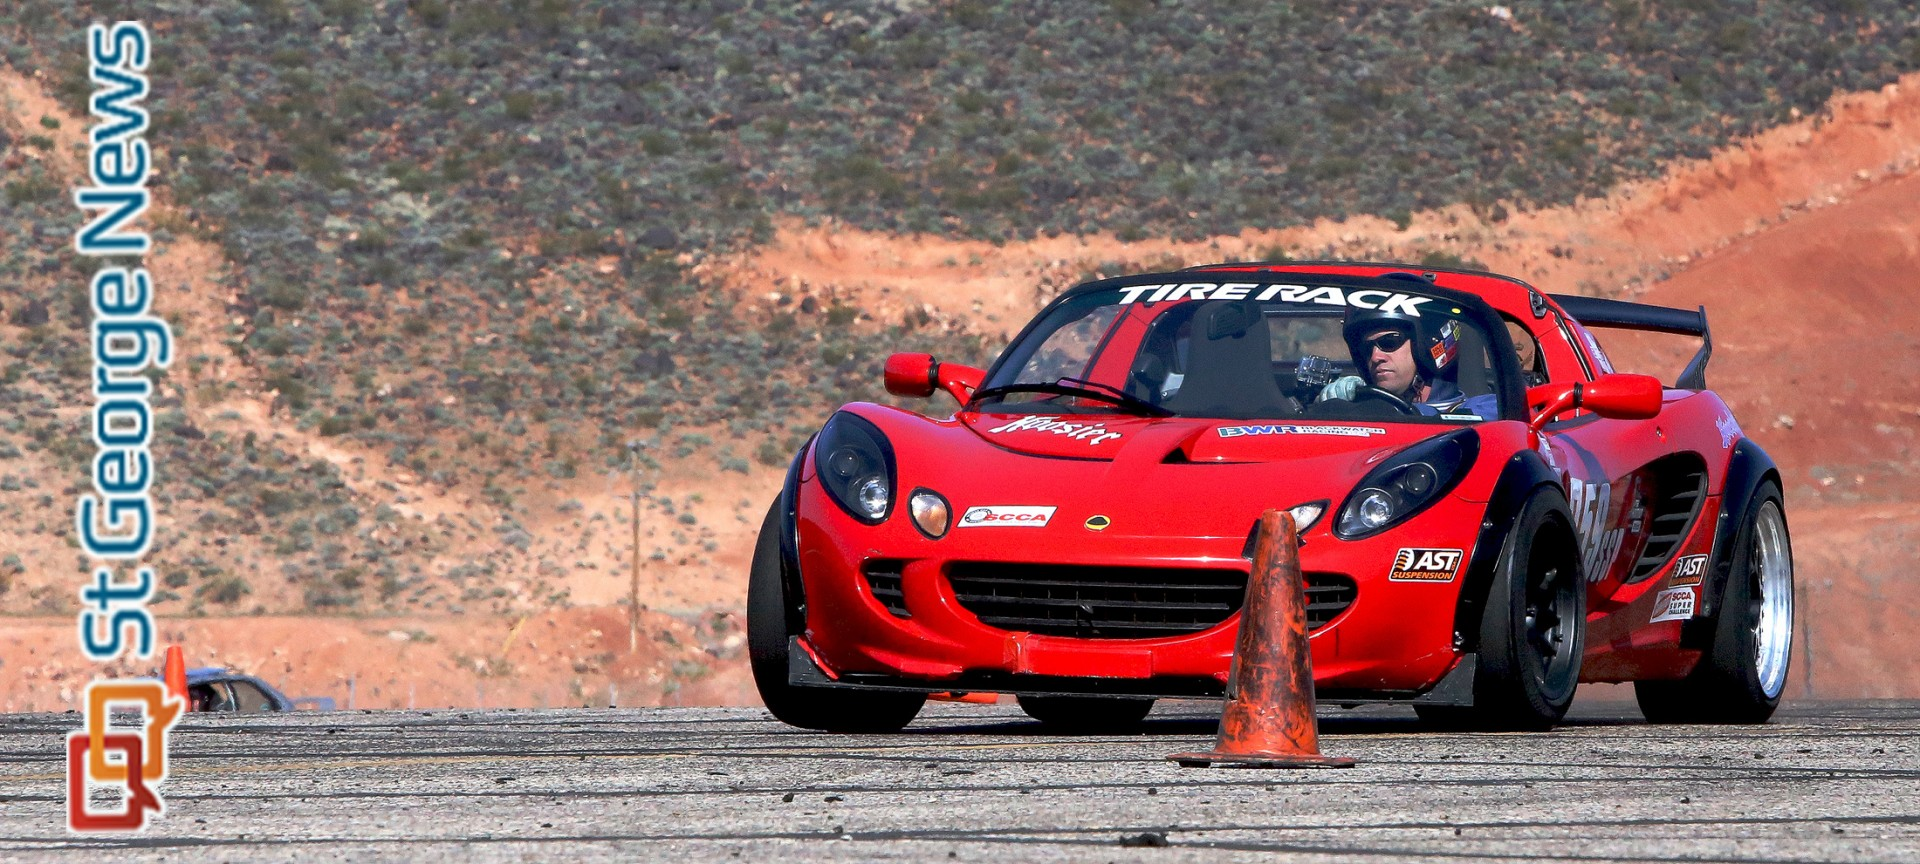 Best Autocross Cars For Beginners